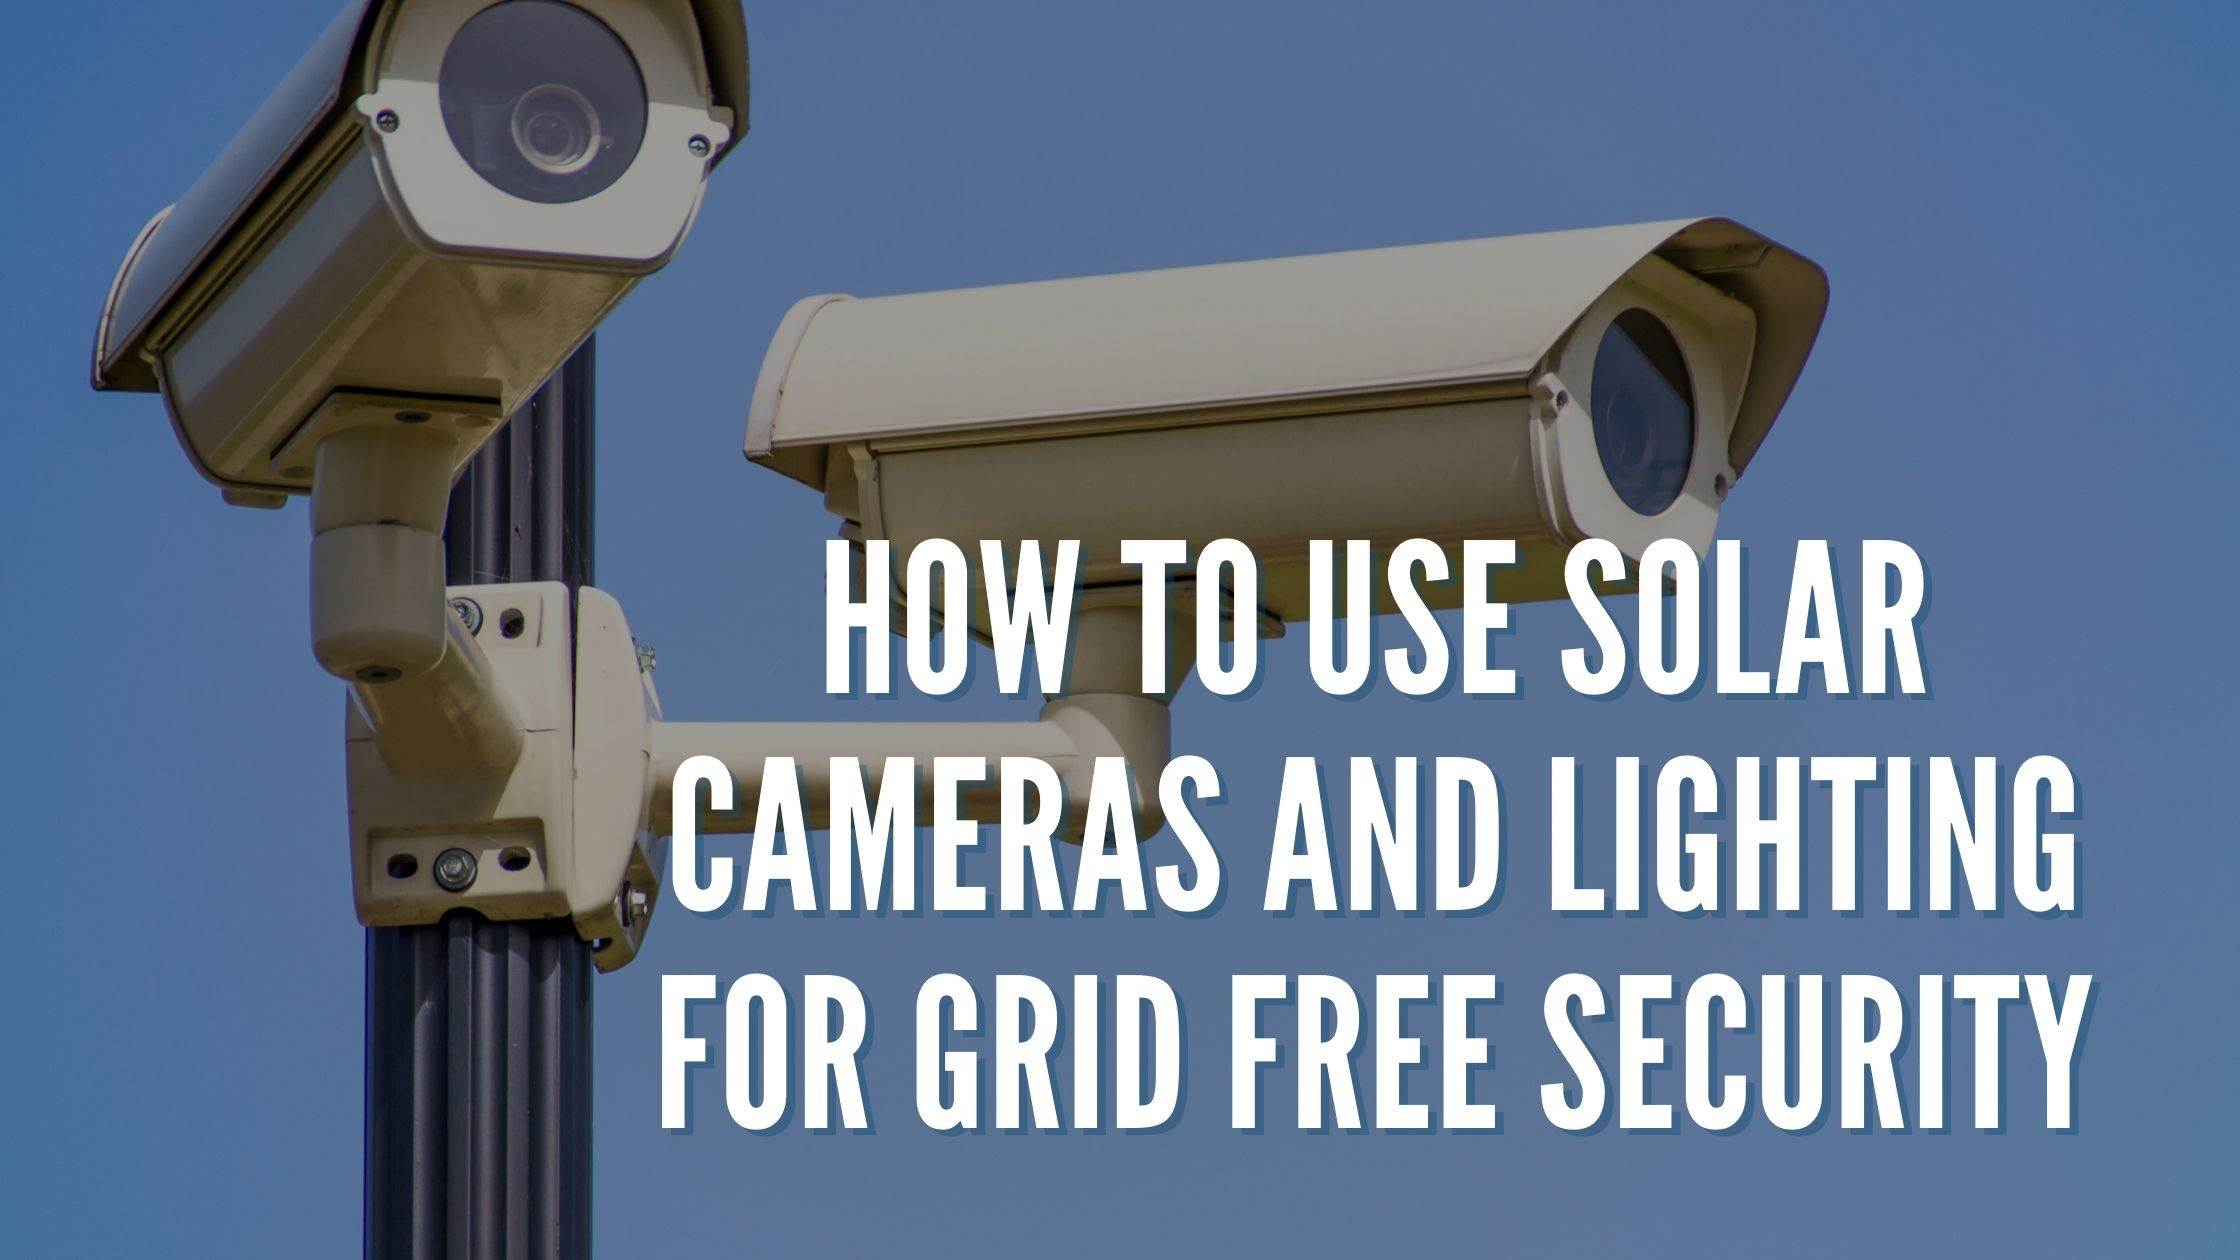 How To Use Solar Cameras and Lighting for Grid Free Security